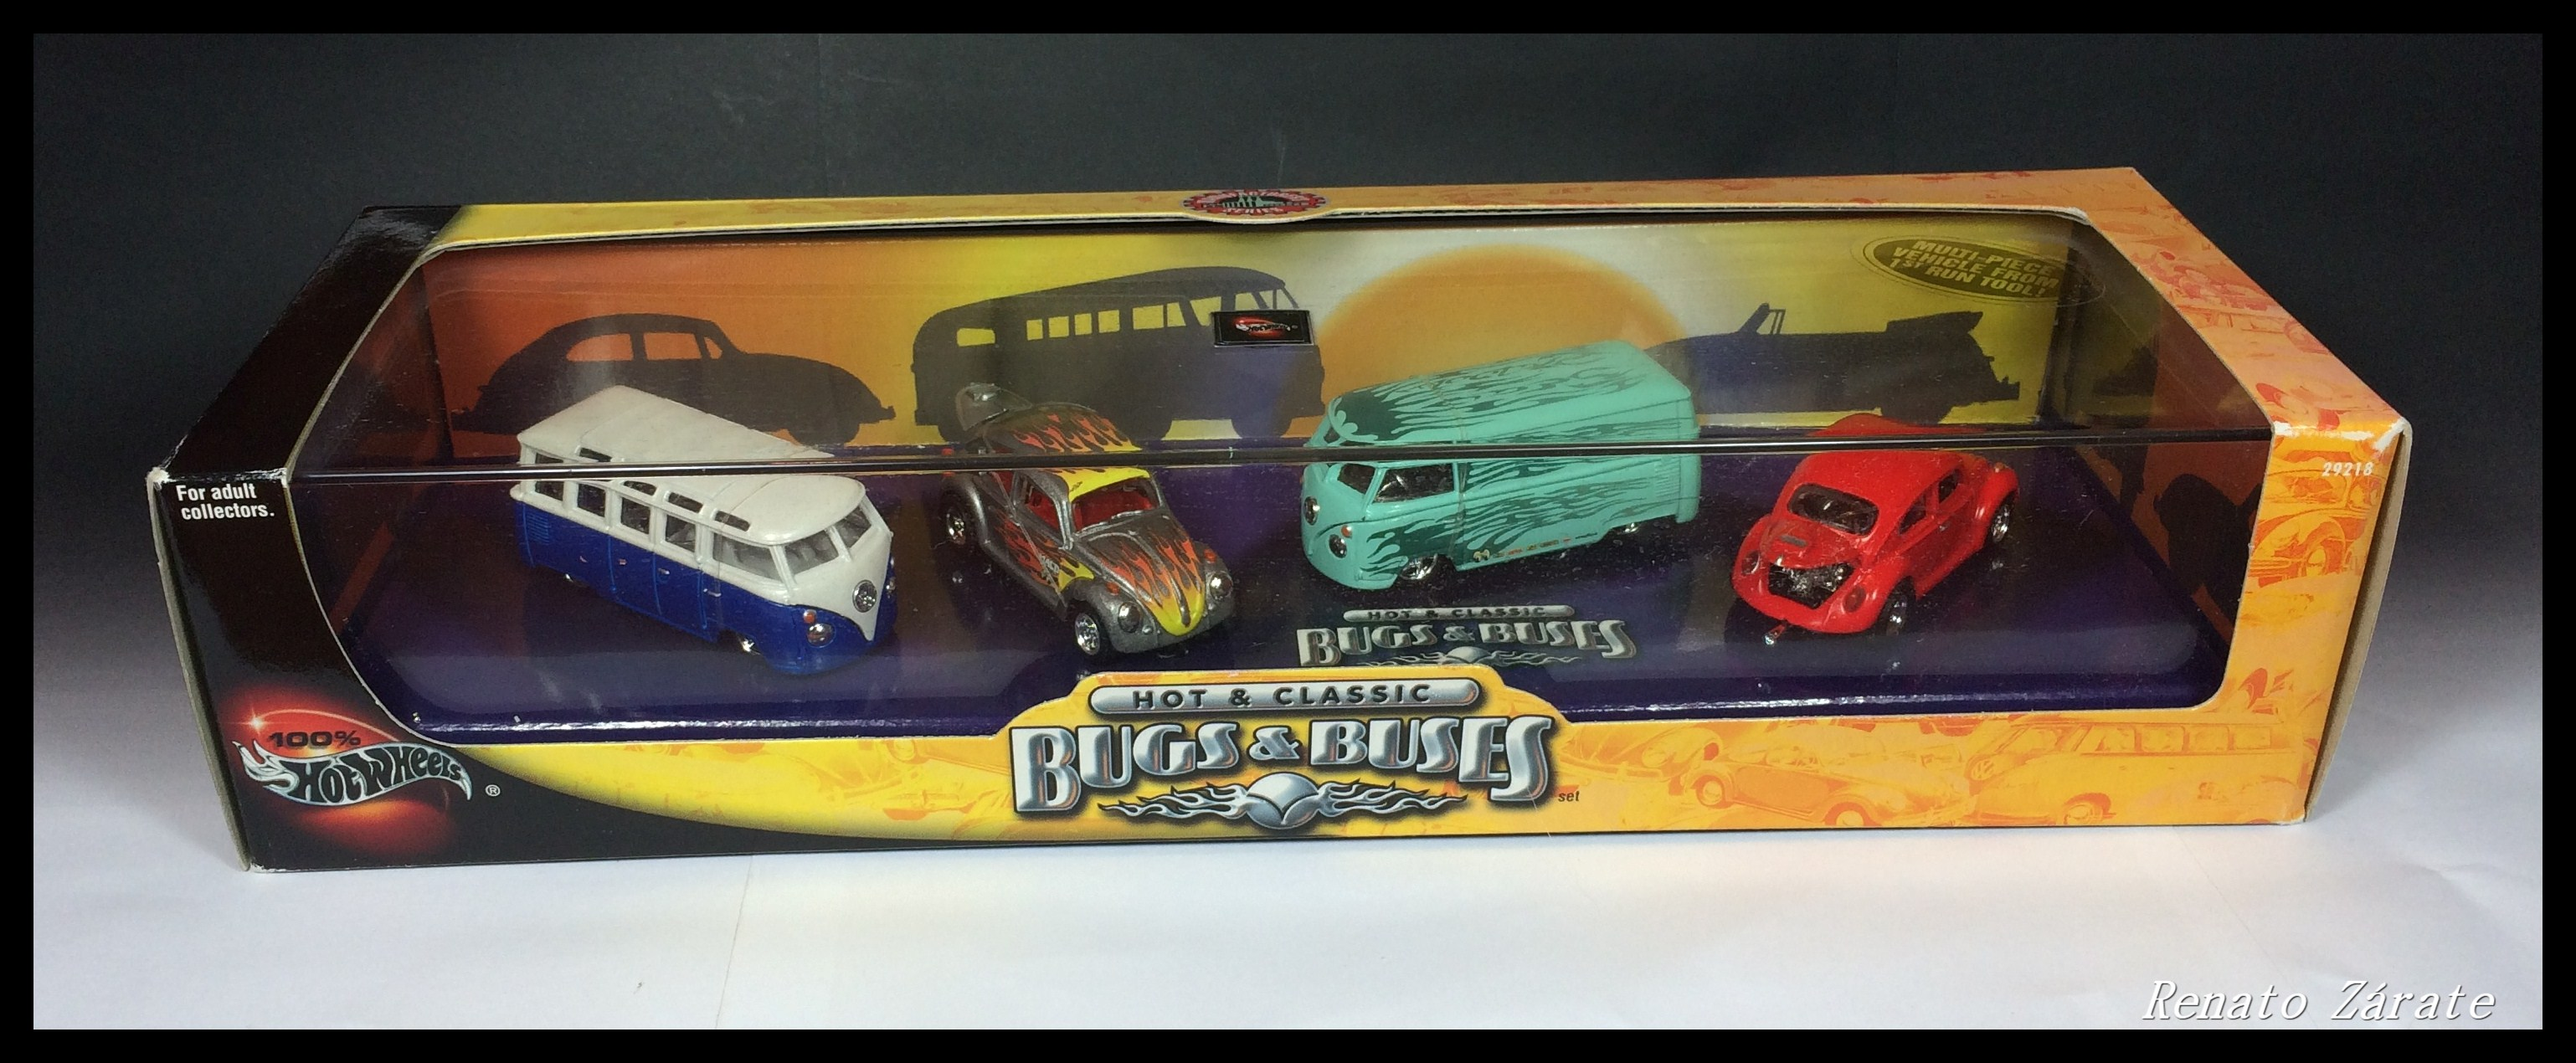 Hot & Classic - Bugs & Buses 4-Car Set